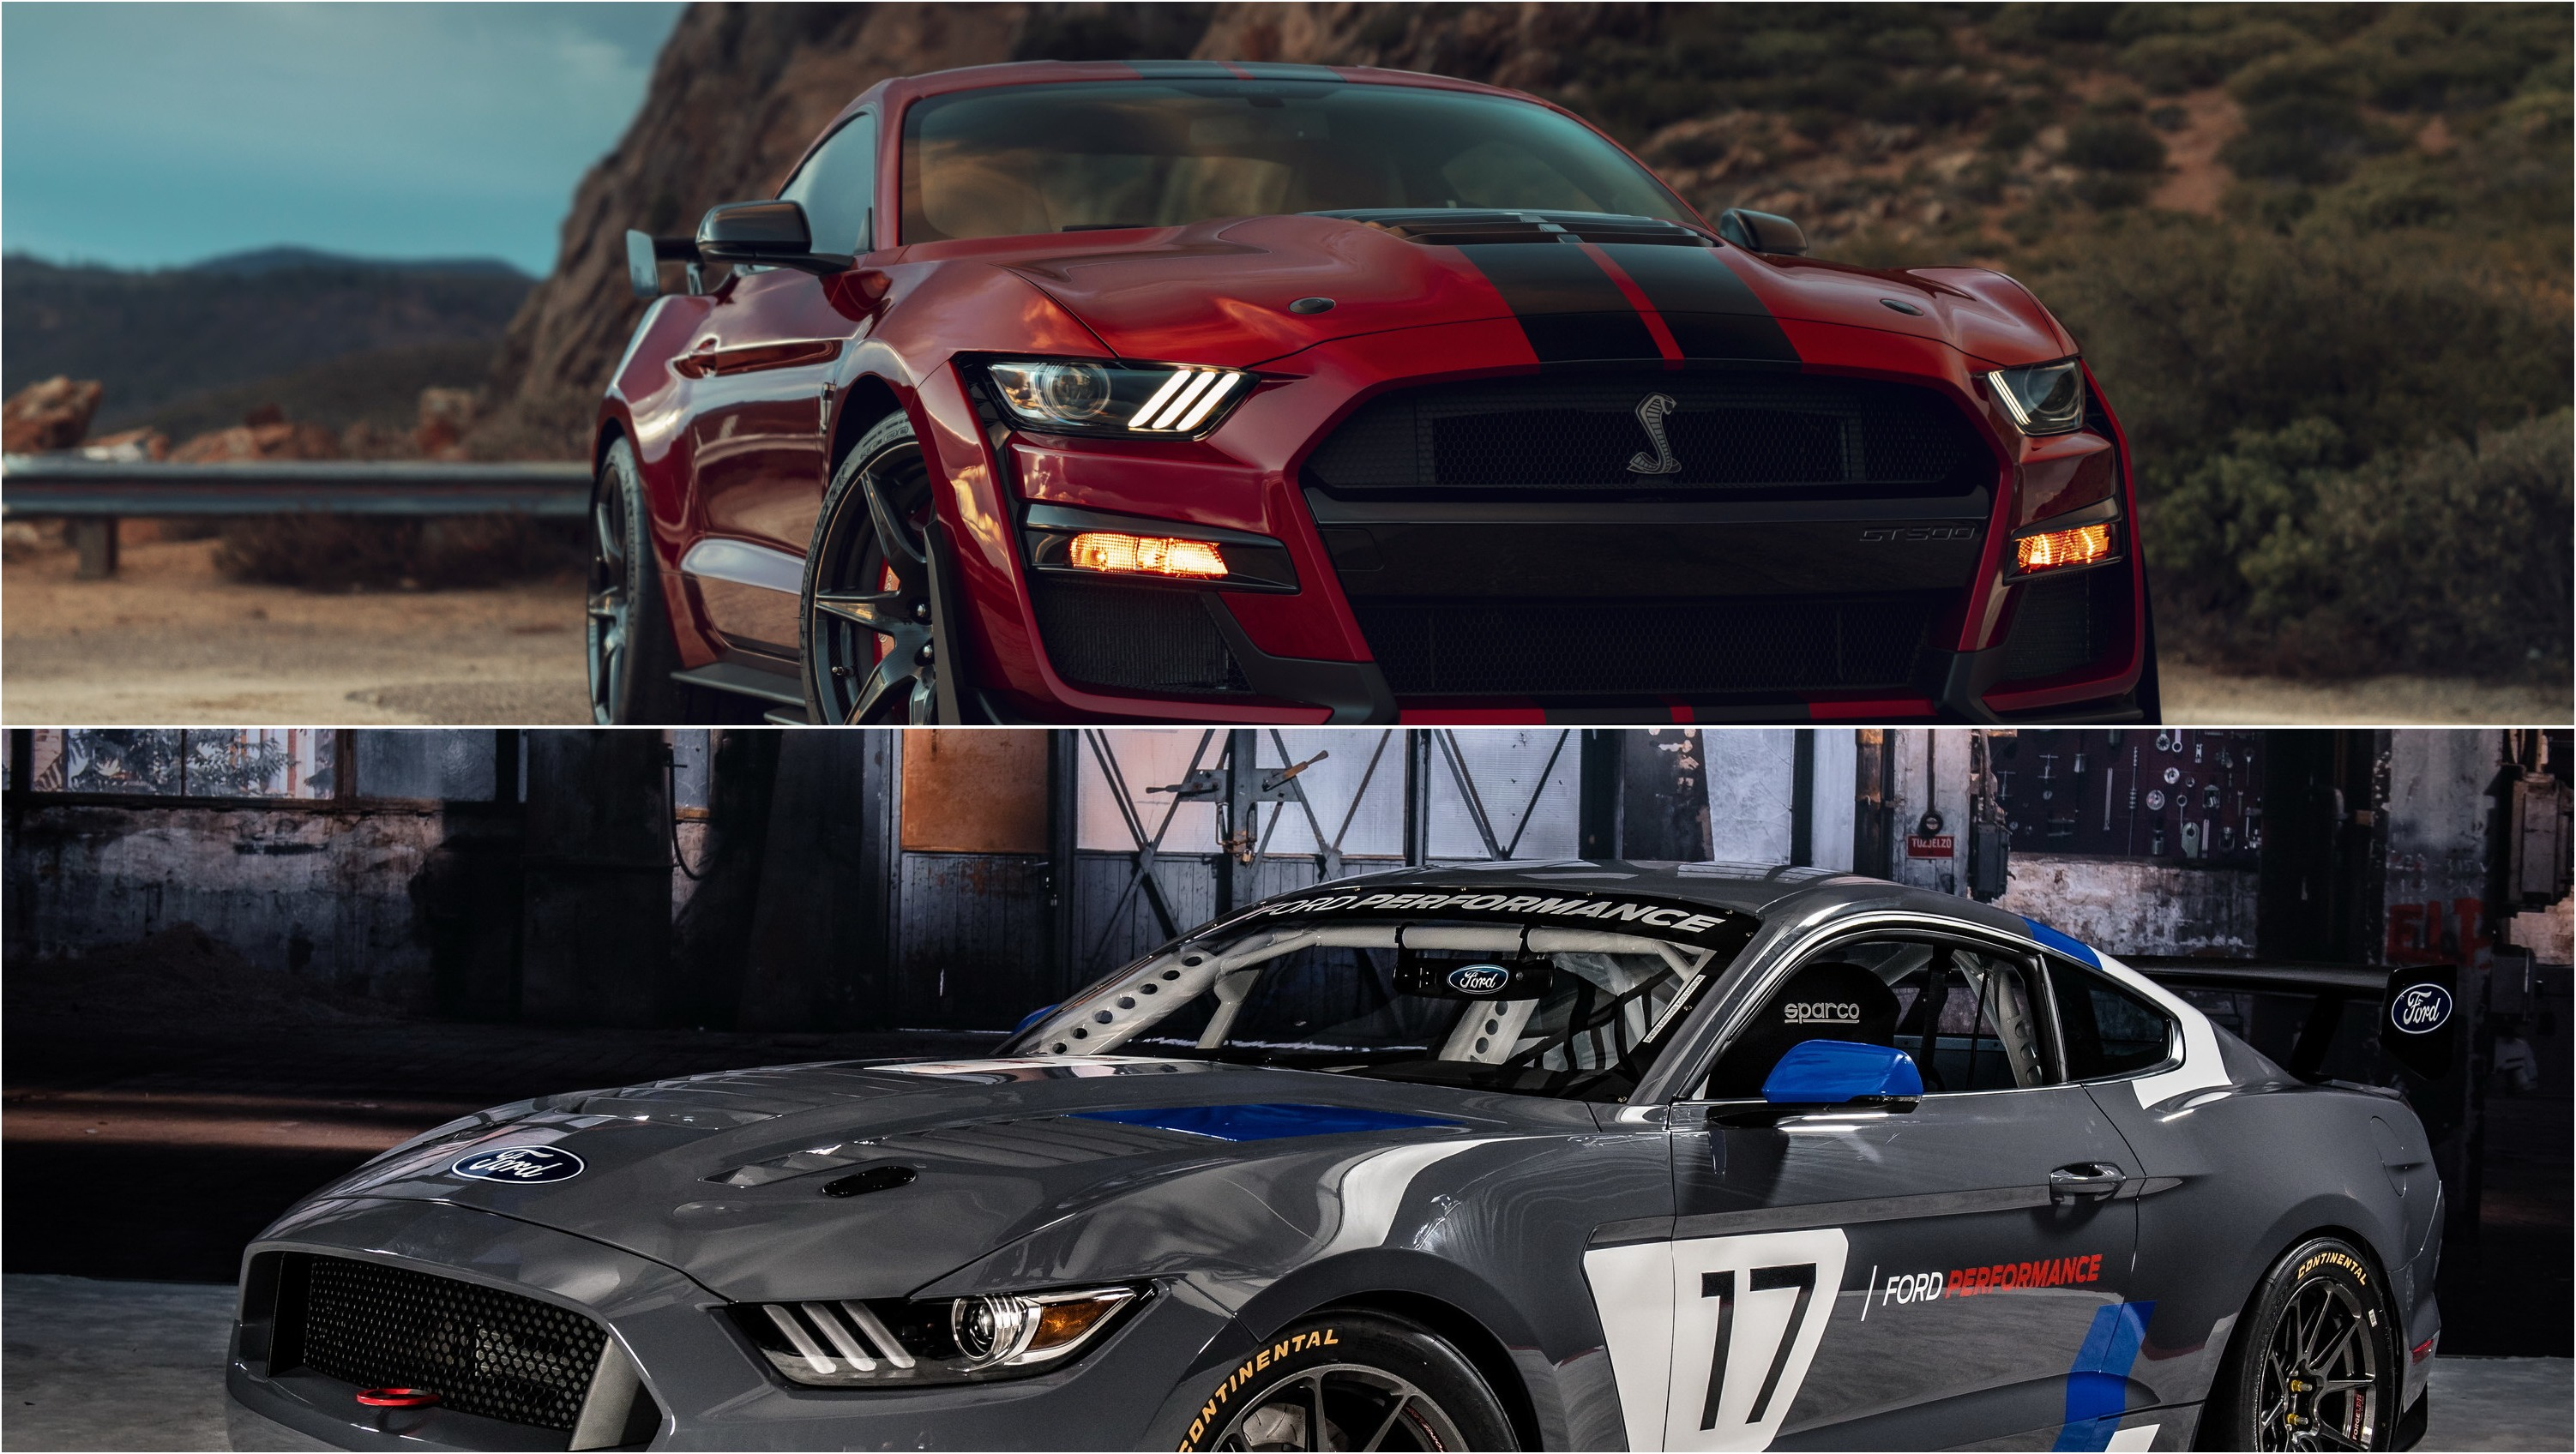 Ford Shelby F150 >> Quick Comparison: 2020 Ford Mustang Shelby GT500 Vs. 2016 Ford Mustang GT4 Pictures, Photos ...